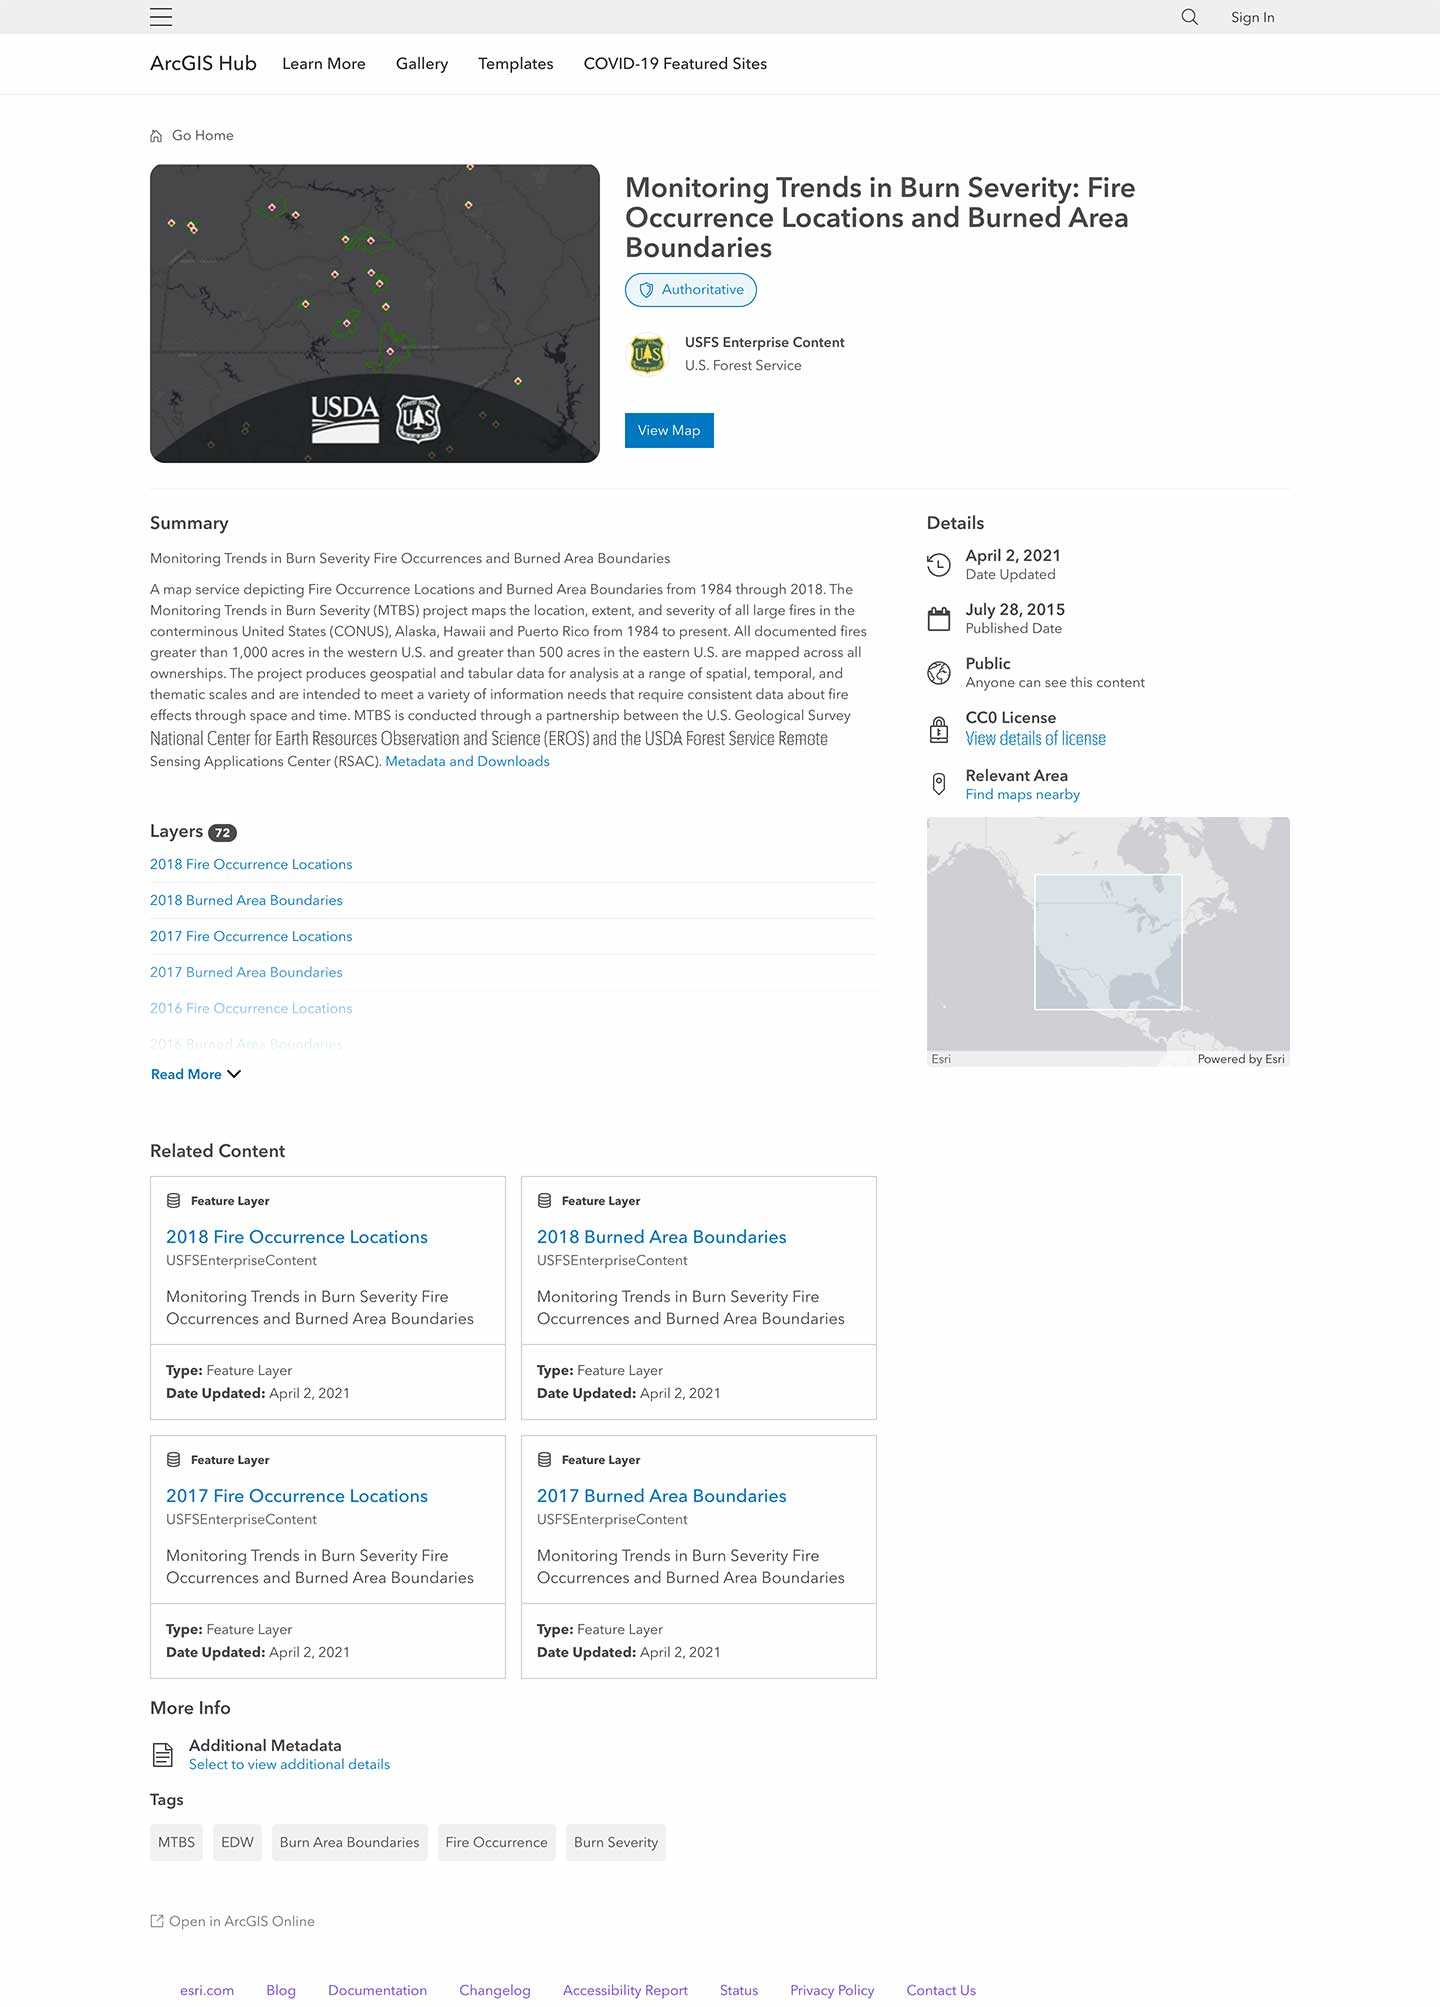 A view of the full details page.